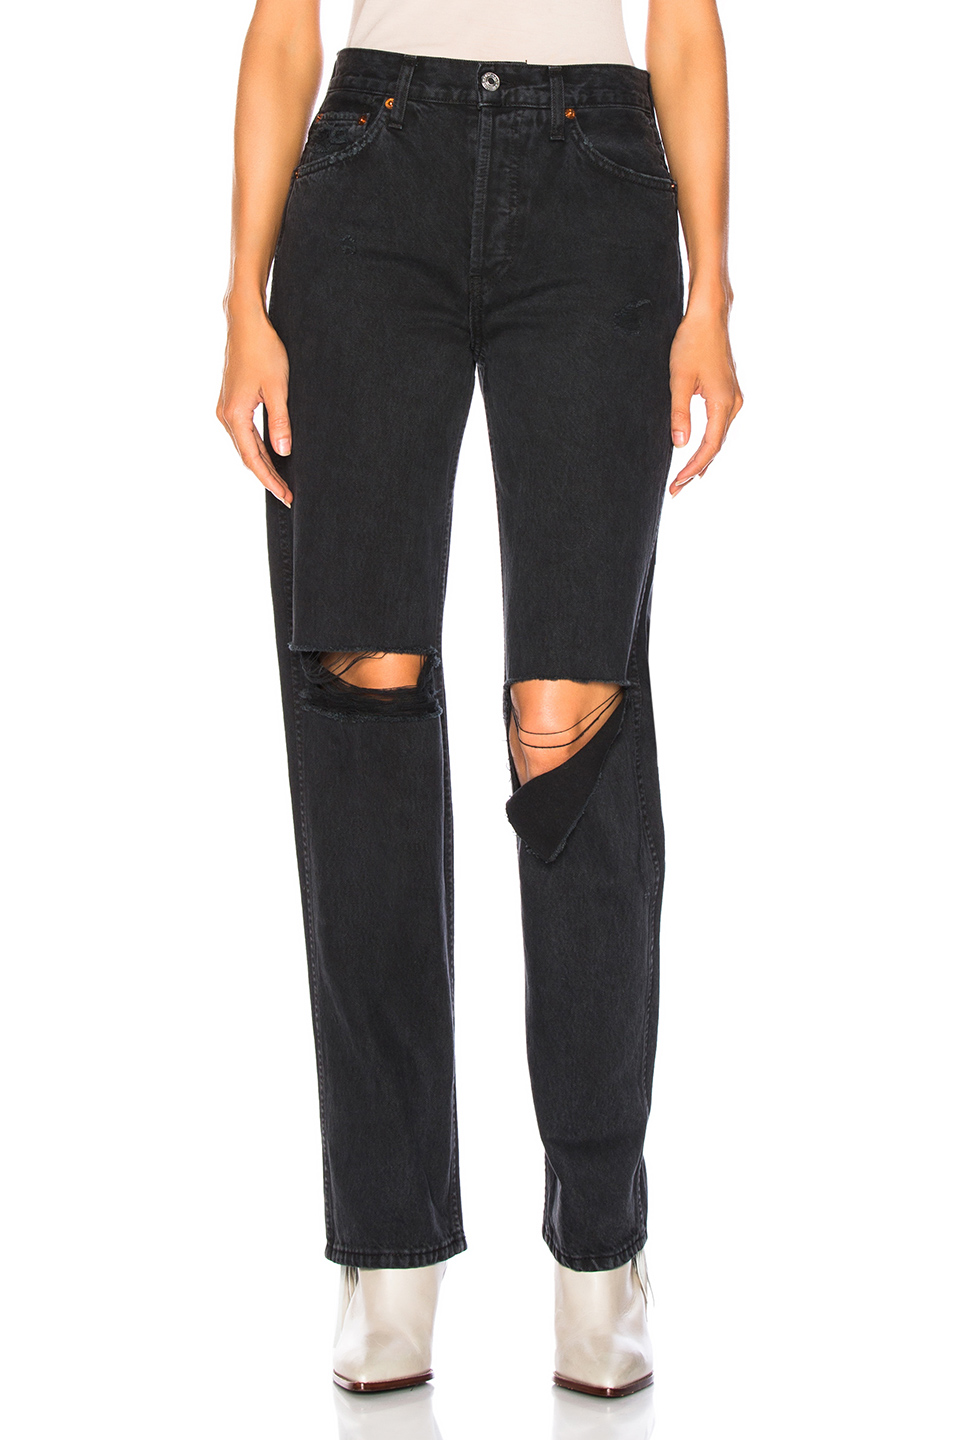 RE/DONE ORIGINALS High Rise Loose in Washed Black | FWRD